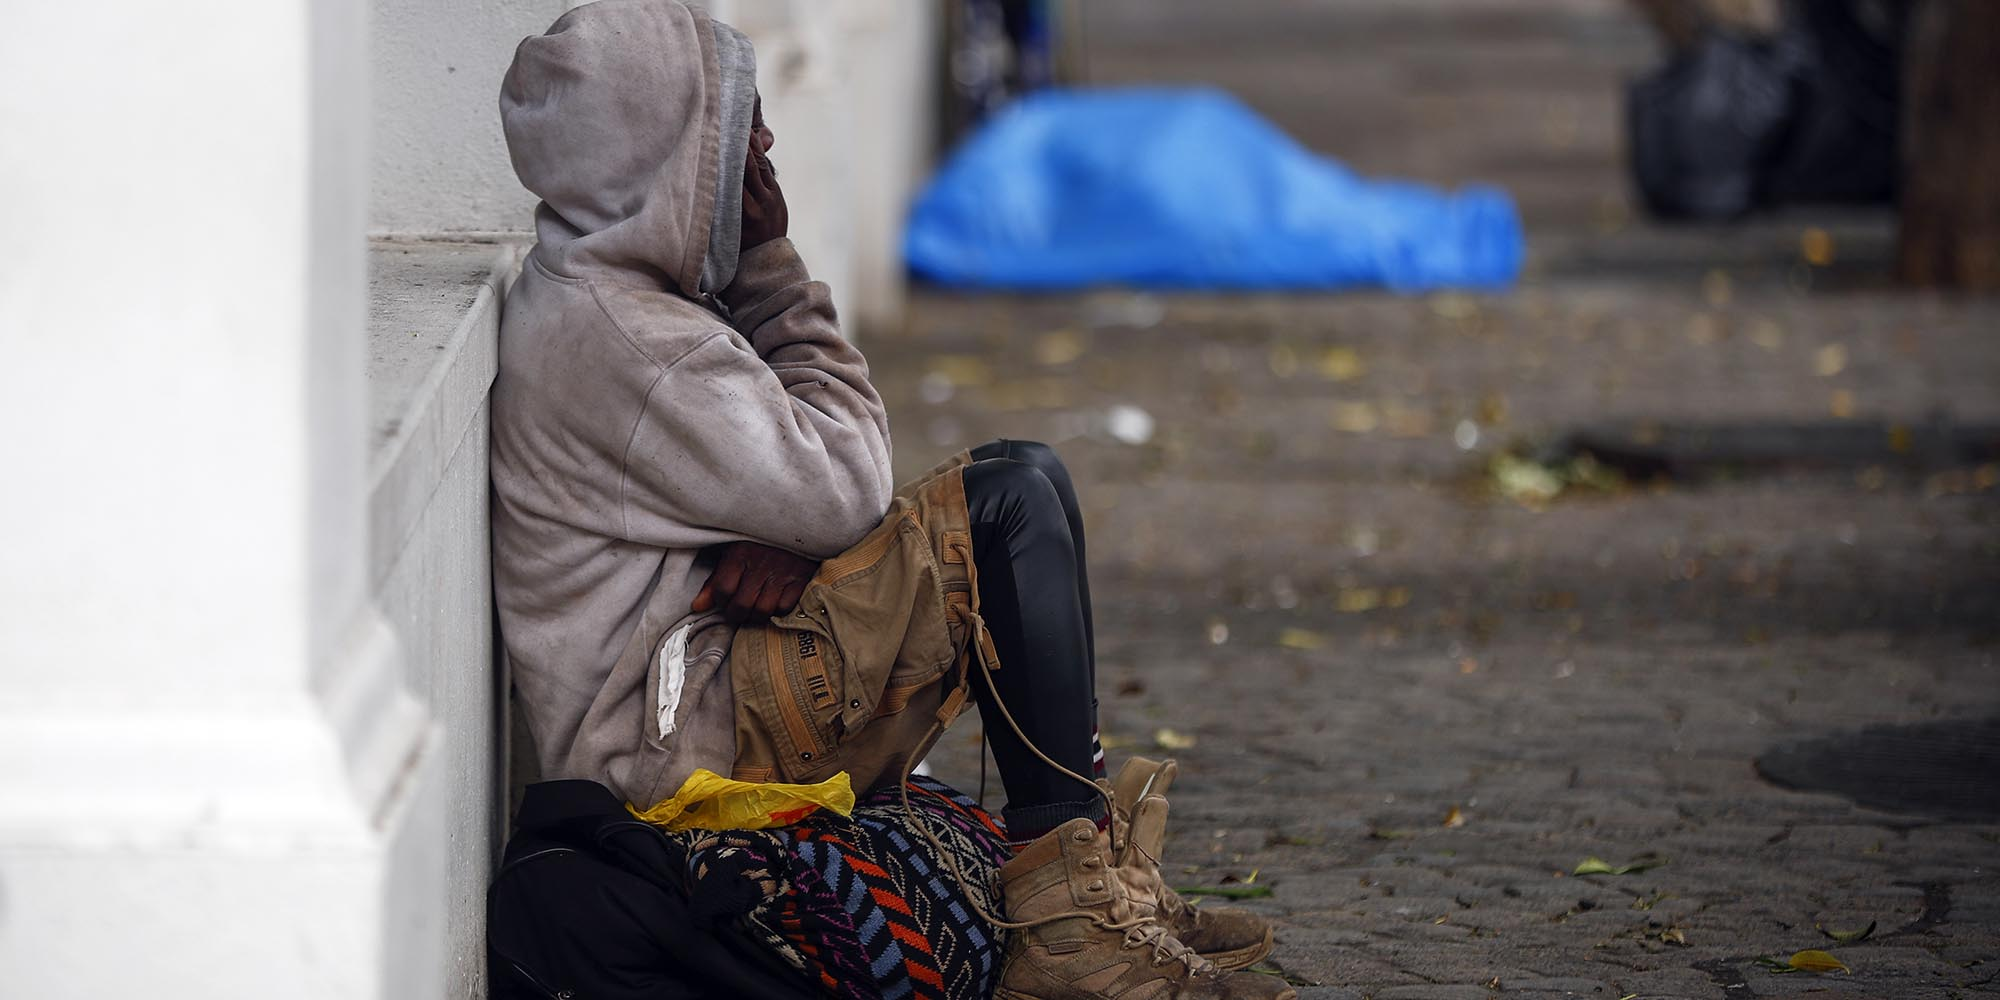 WORLD HOMELESS DAY: Cape Town's homeless vent their anger at City law enforcement